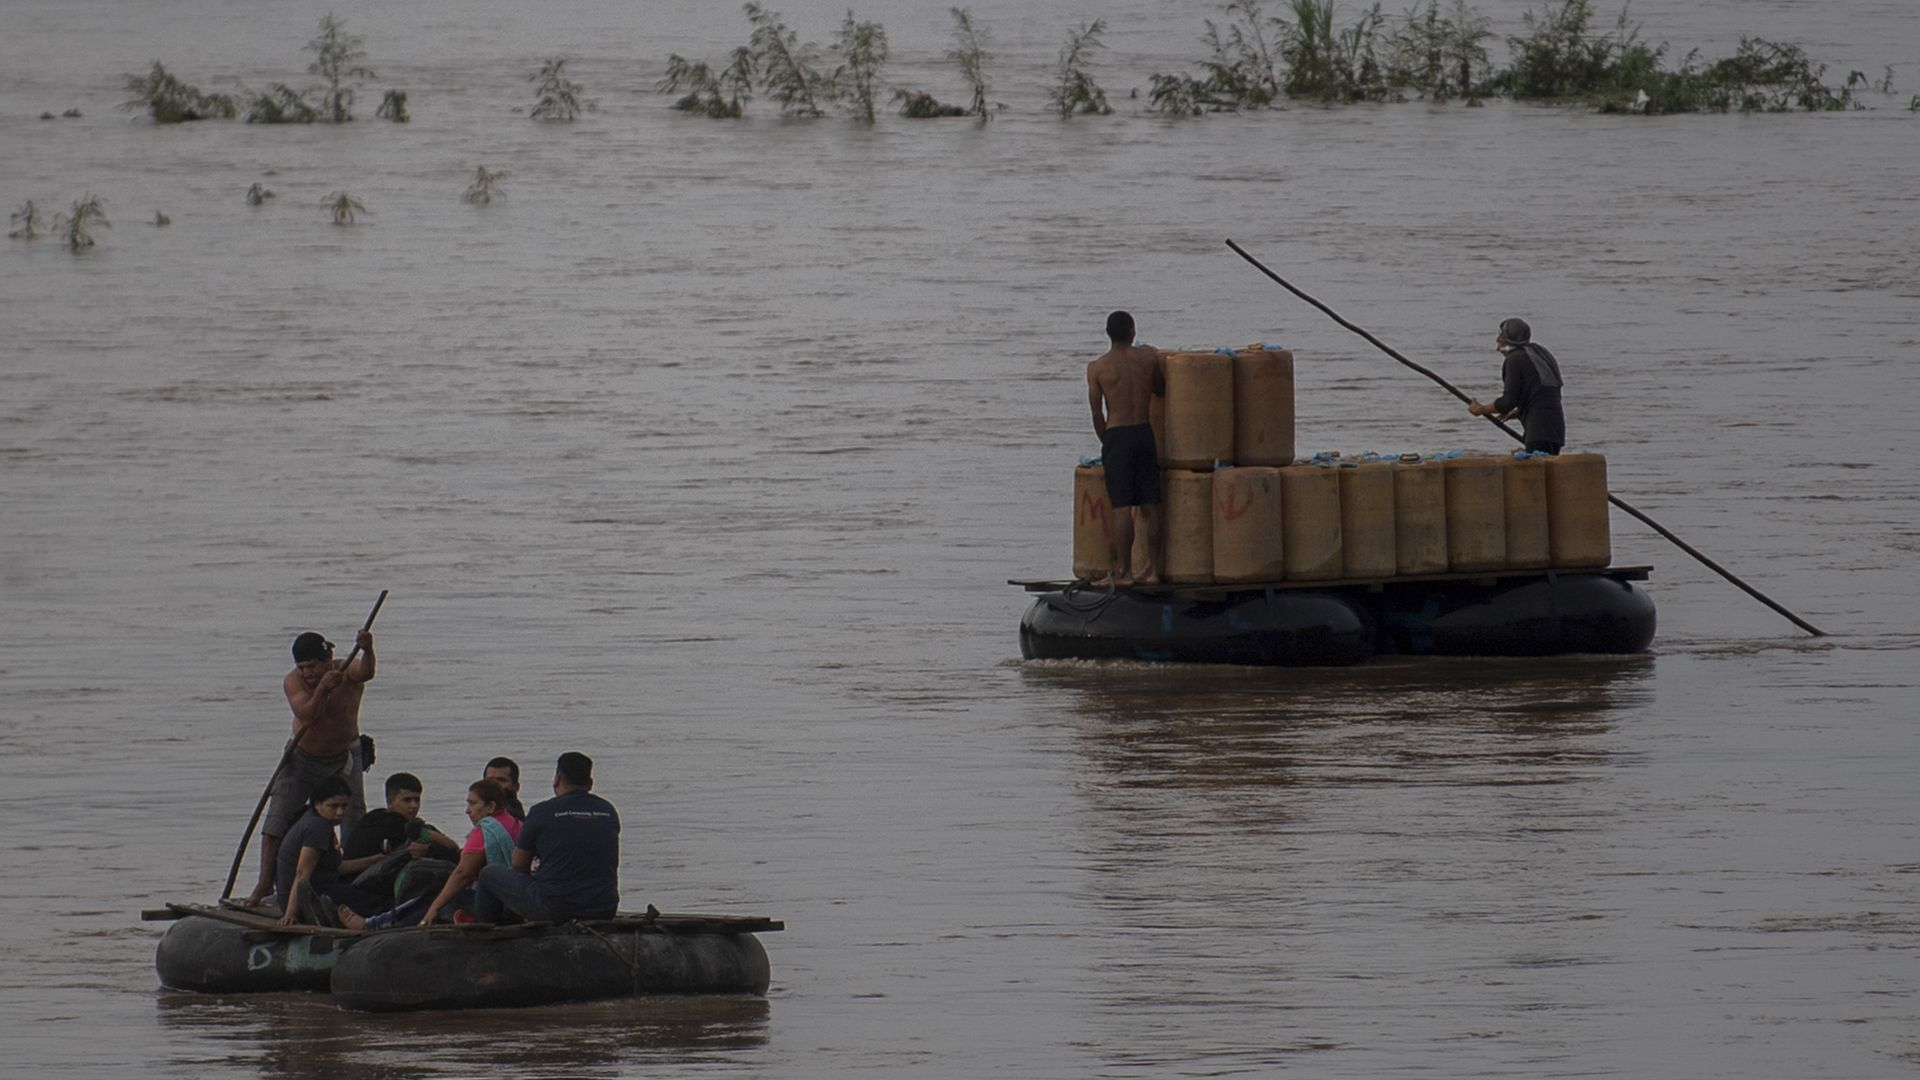 Migrants use rafts to cross the Suchiate river from Ciudad Hidalgo in Chiapas State, Mexico, to Tecun Uman in Guatemala